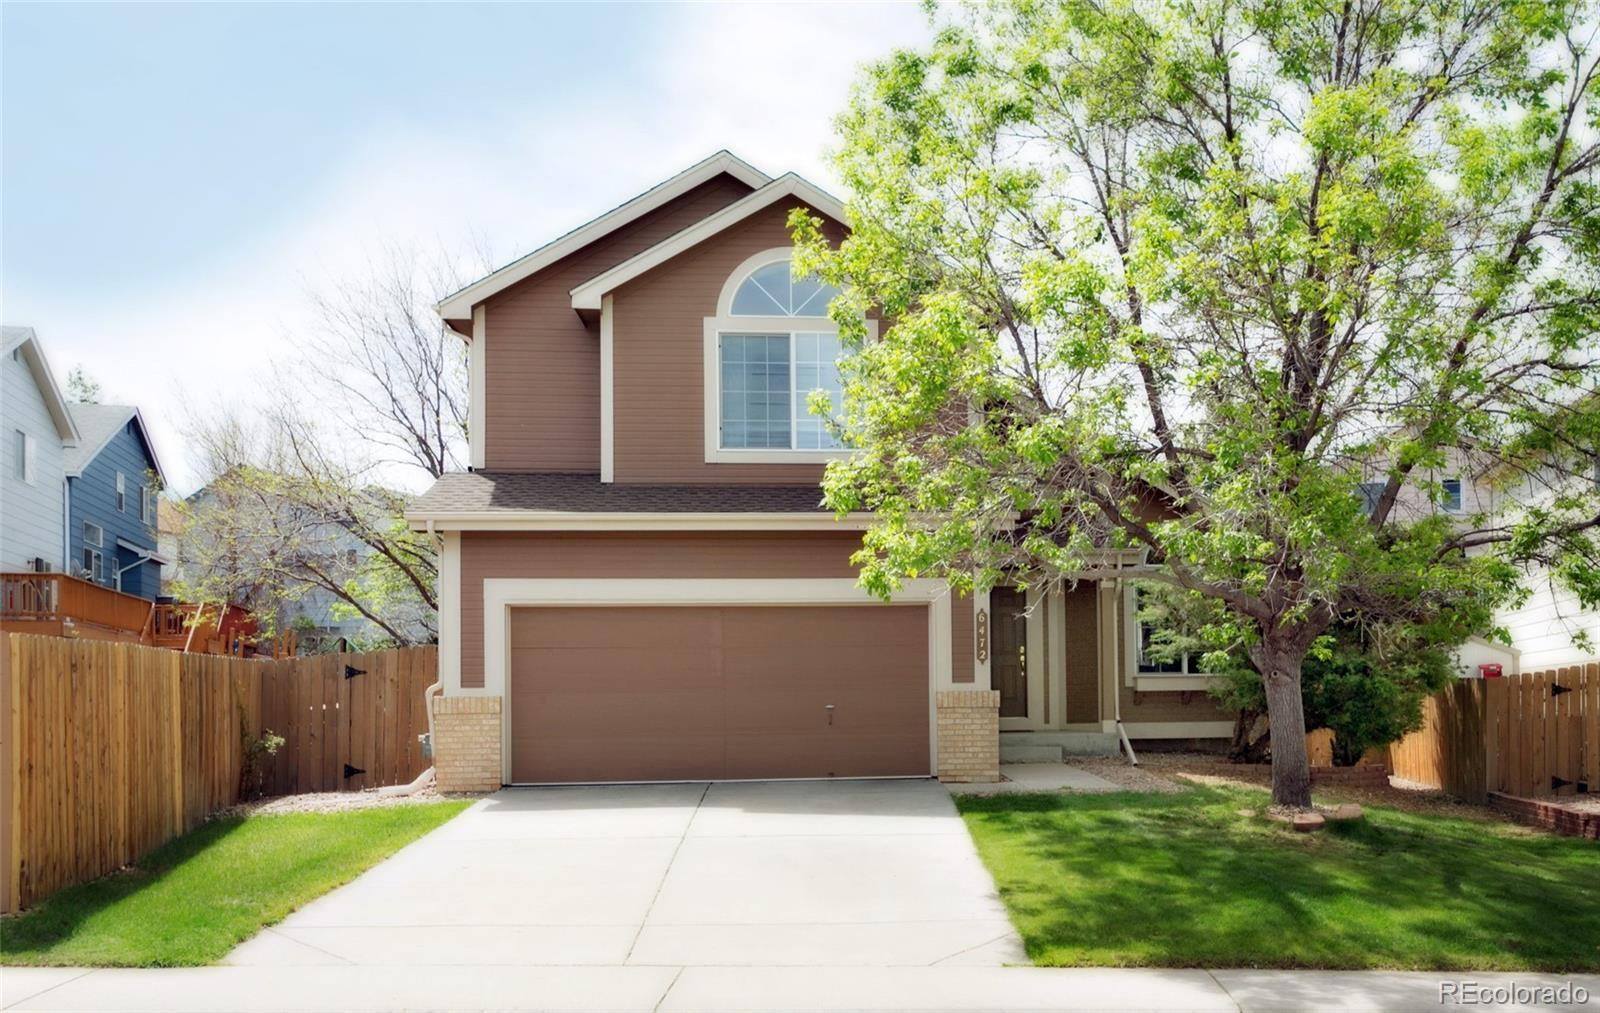 6472 W 96th Drive, Westminster, CO 80021 - #: 5194227